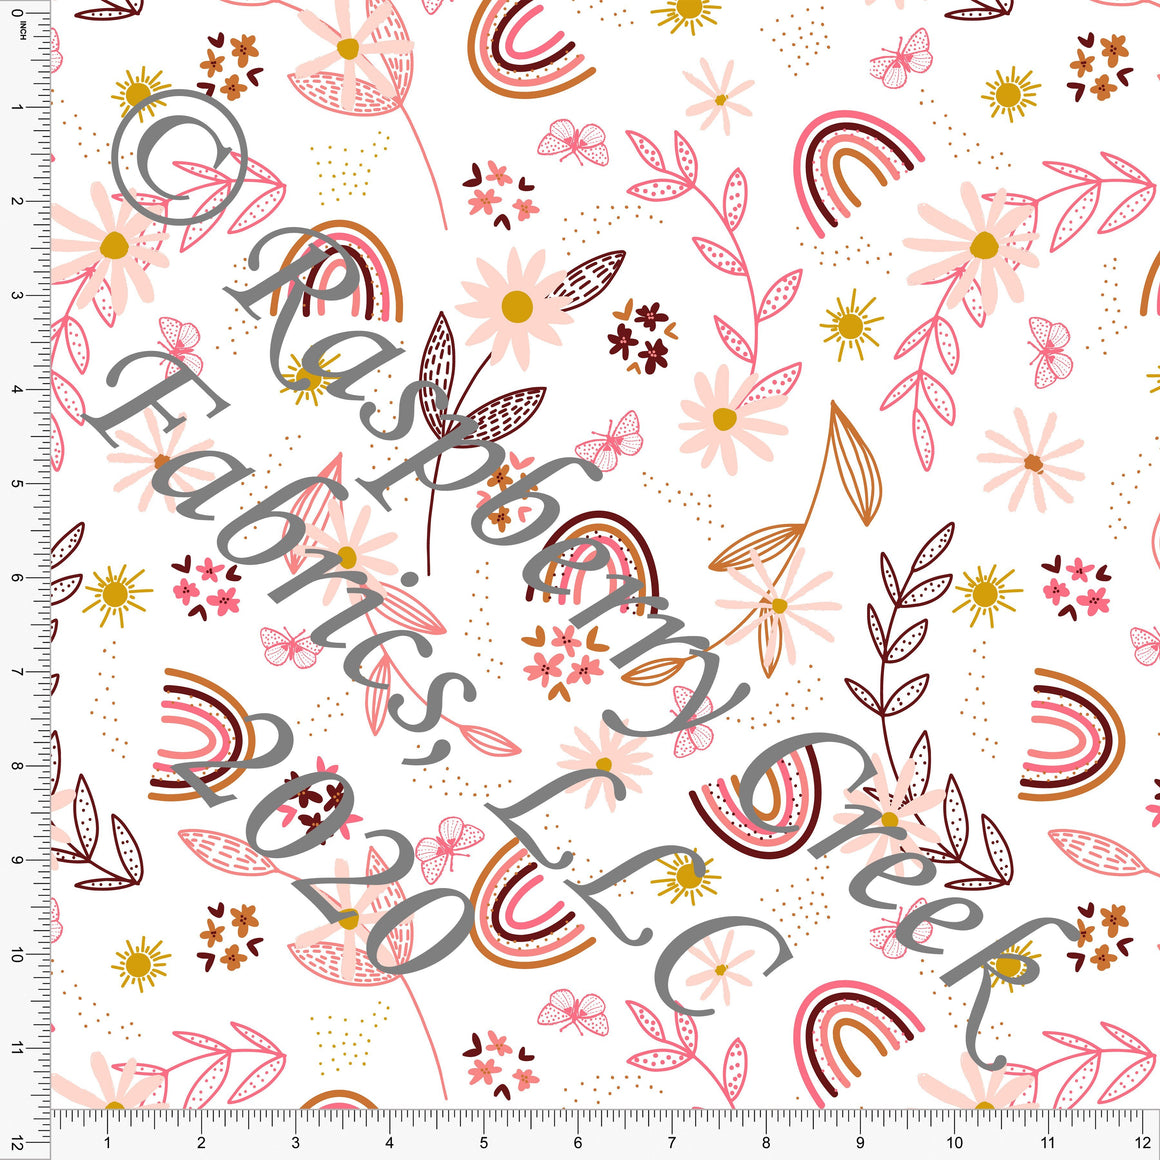 Pink Peach Burgundy Rust and Mustard Rainbow Floral, Daisy Fox by Kimberly Henrie for Club Fabrics - Raspberry Creek Fabrics